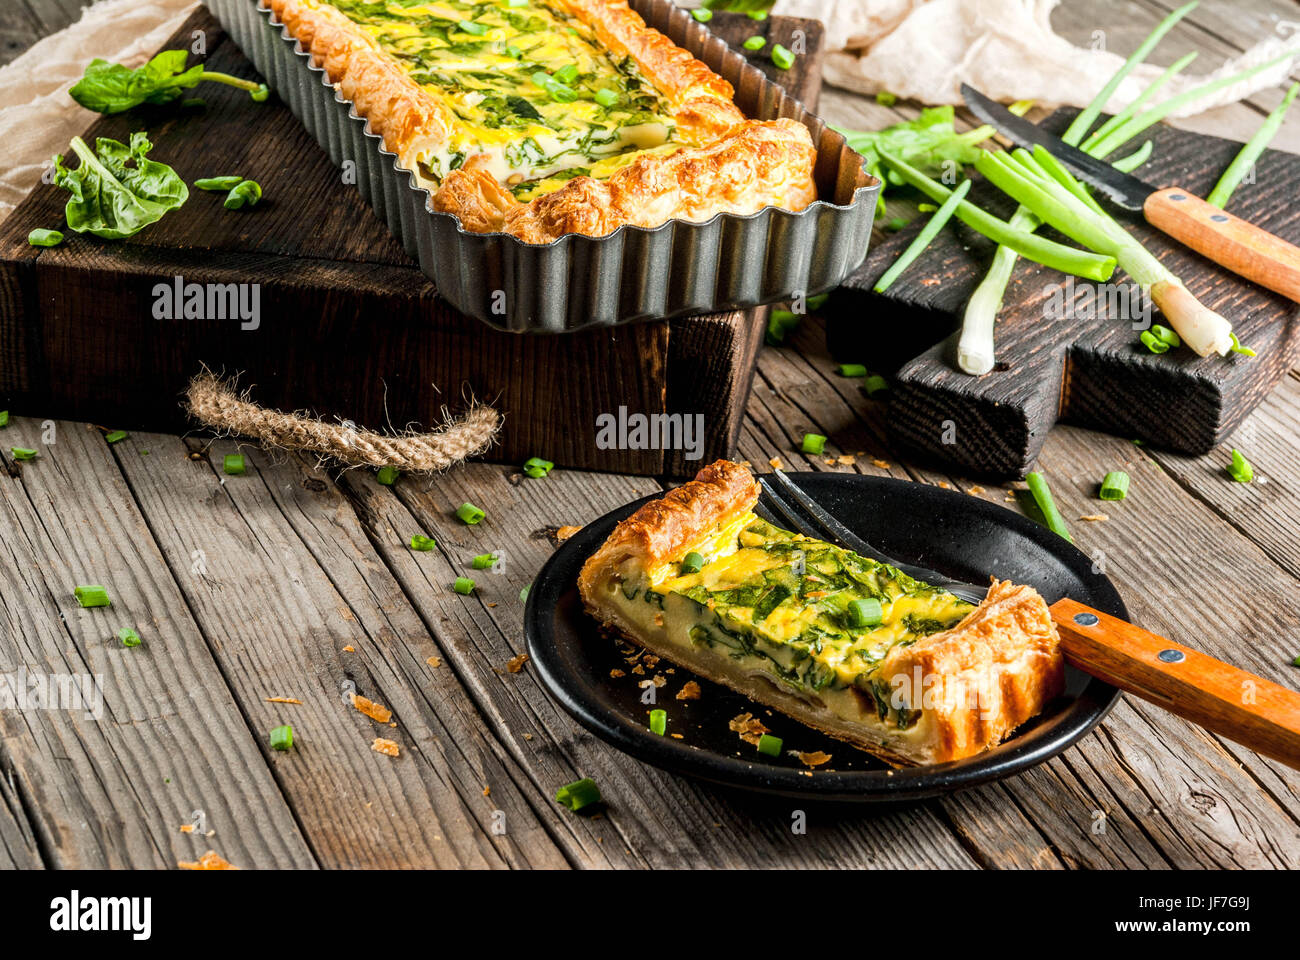 French home cooking. Casserole. Pie. quiche lorraine from puff pastry, with young green onions and spinach. On old - Stock Image